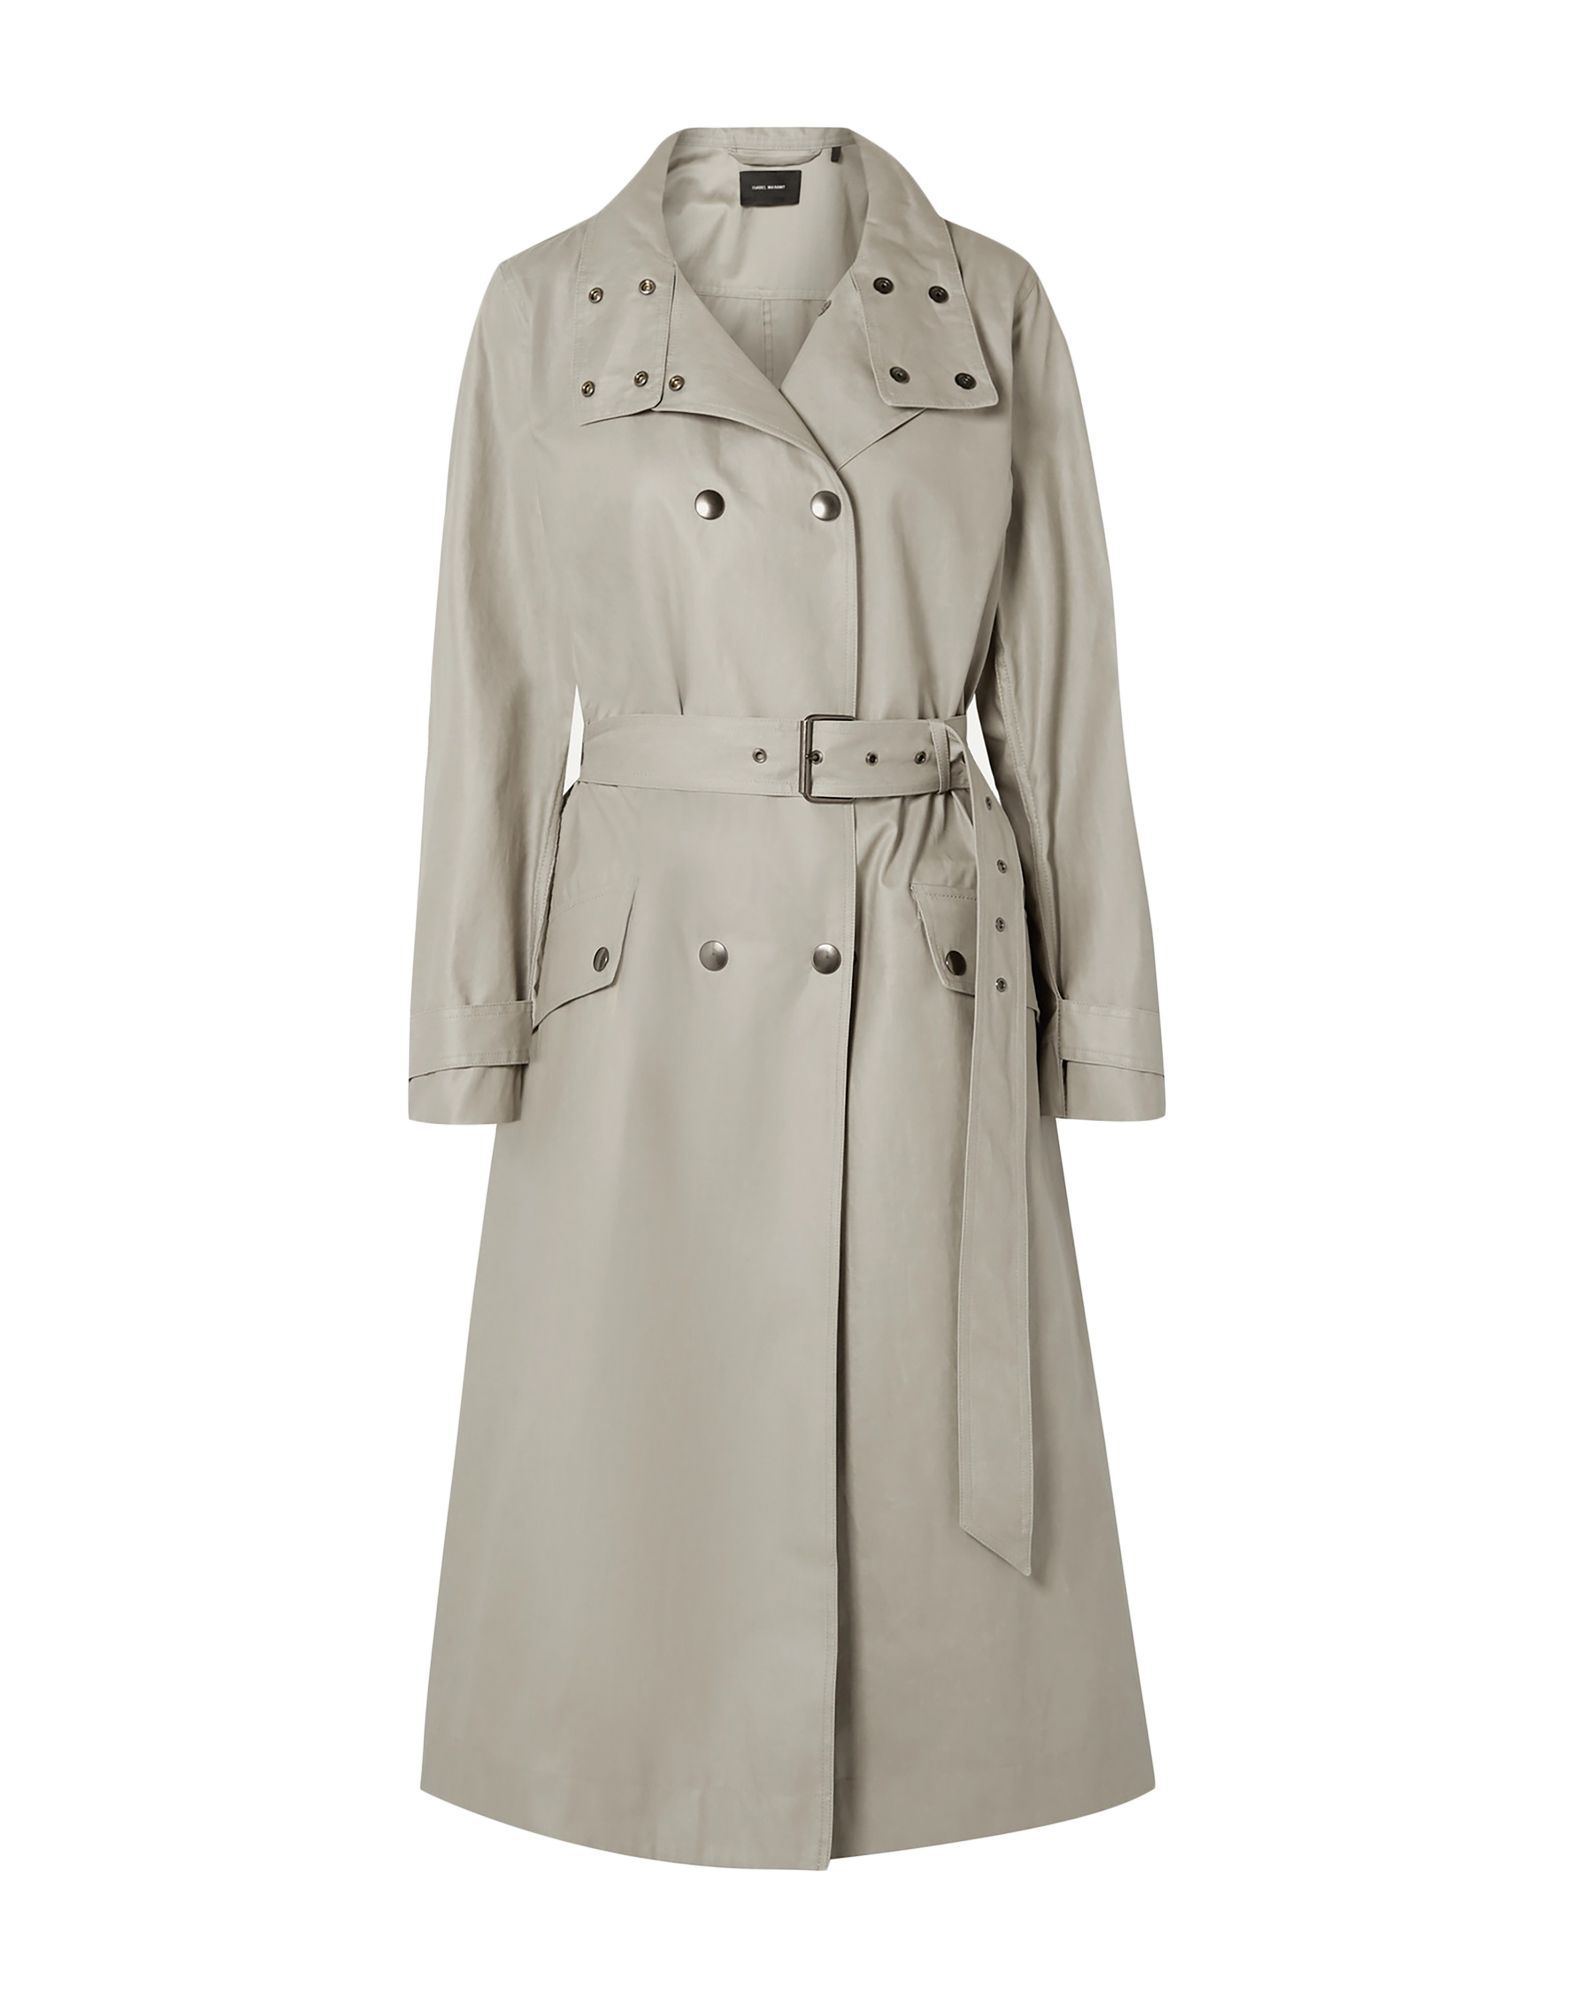 ISABEL MARANT Overcoats. plain weave, belt, solid color, double-breasted, snap buttons fastening, turtleneck, multipockets, long sleeves, rear slit, unlined, large sized. 100% Cotton, Brass